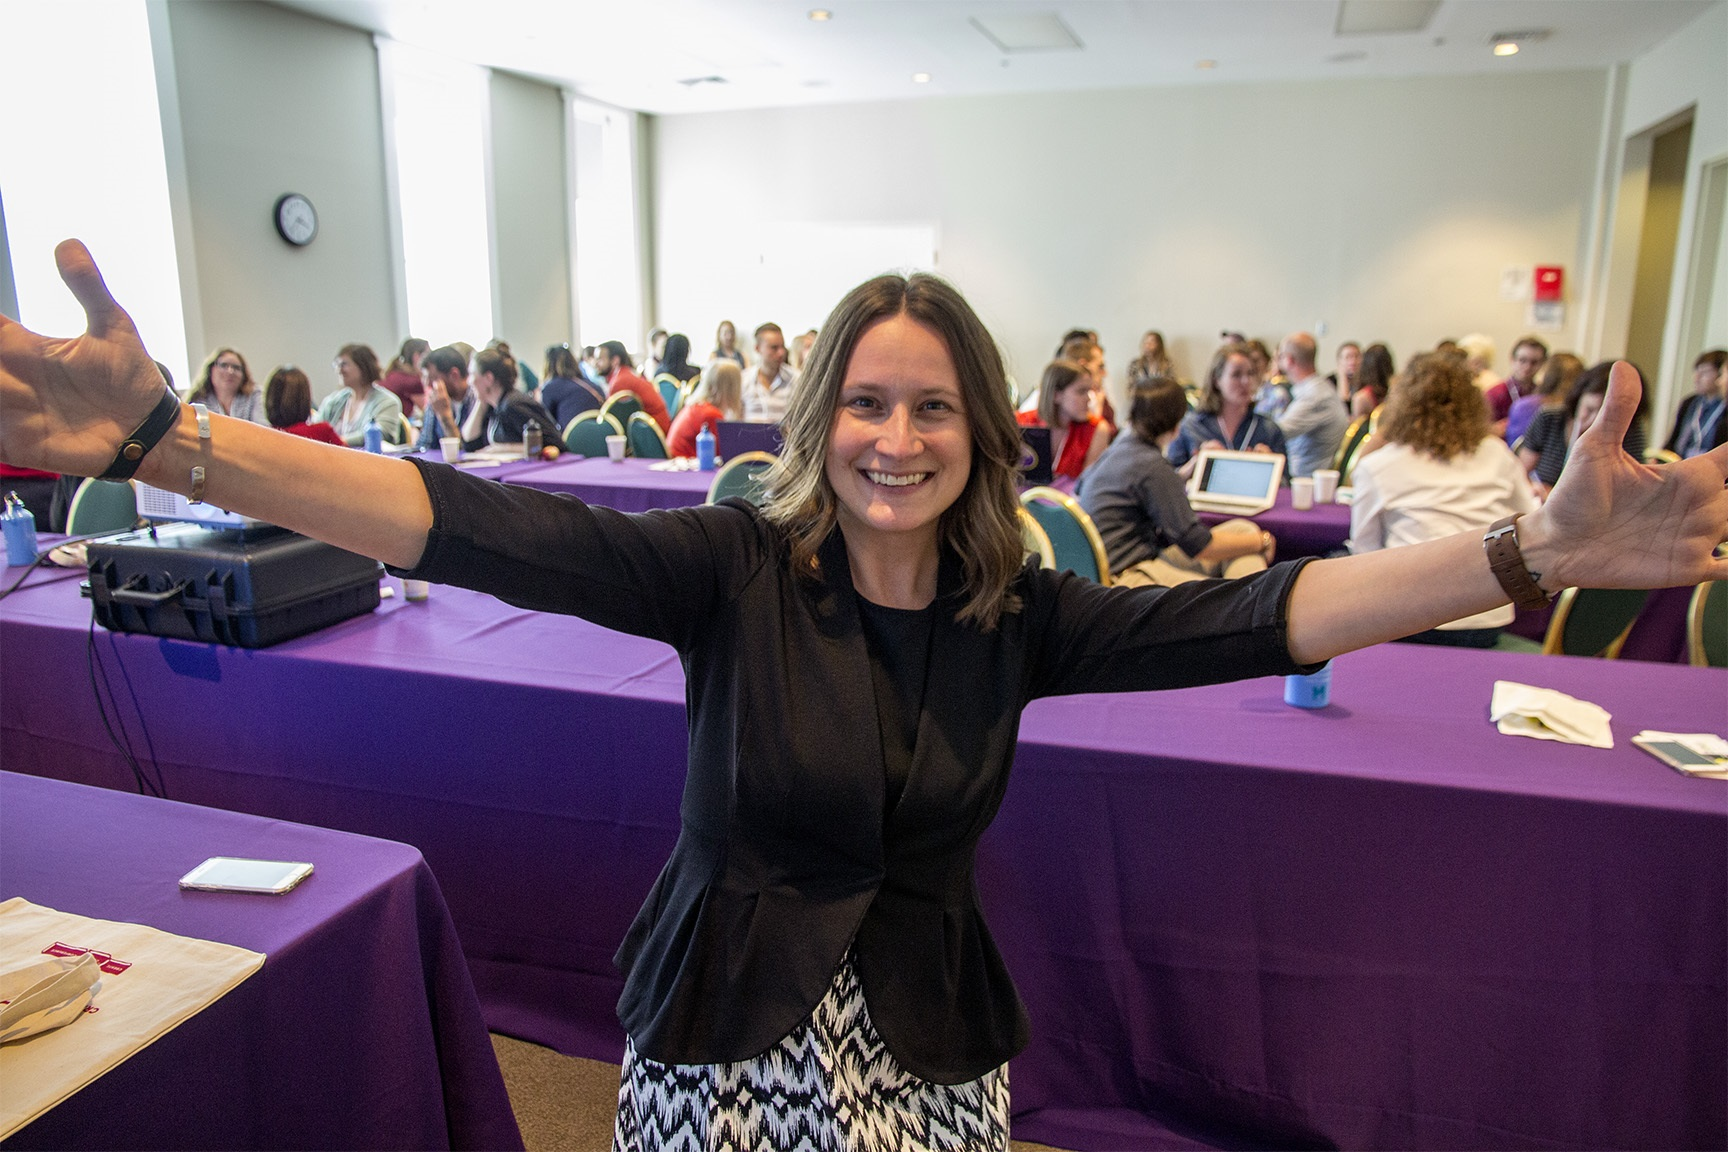 A woman leading a meeting smiles and extends her arms to the camera in front of the room full of meeting participants